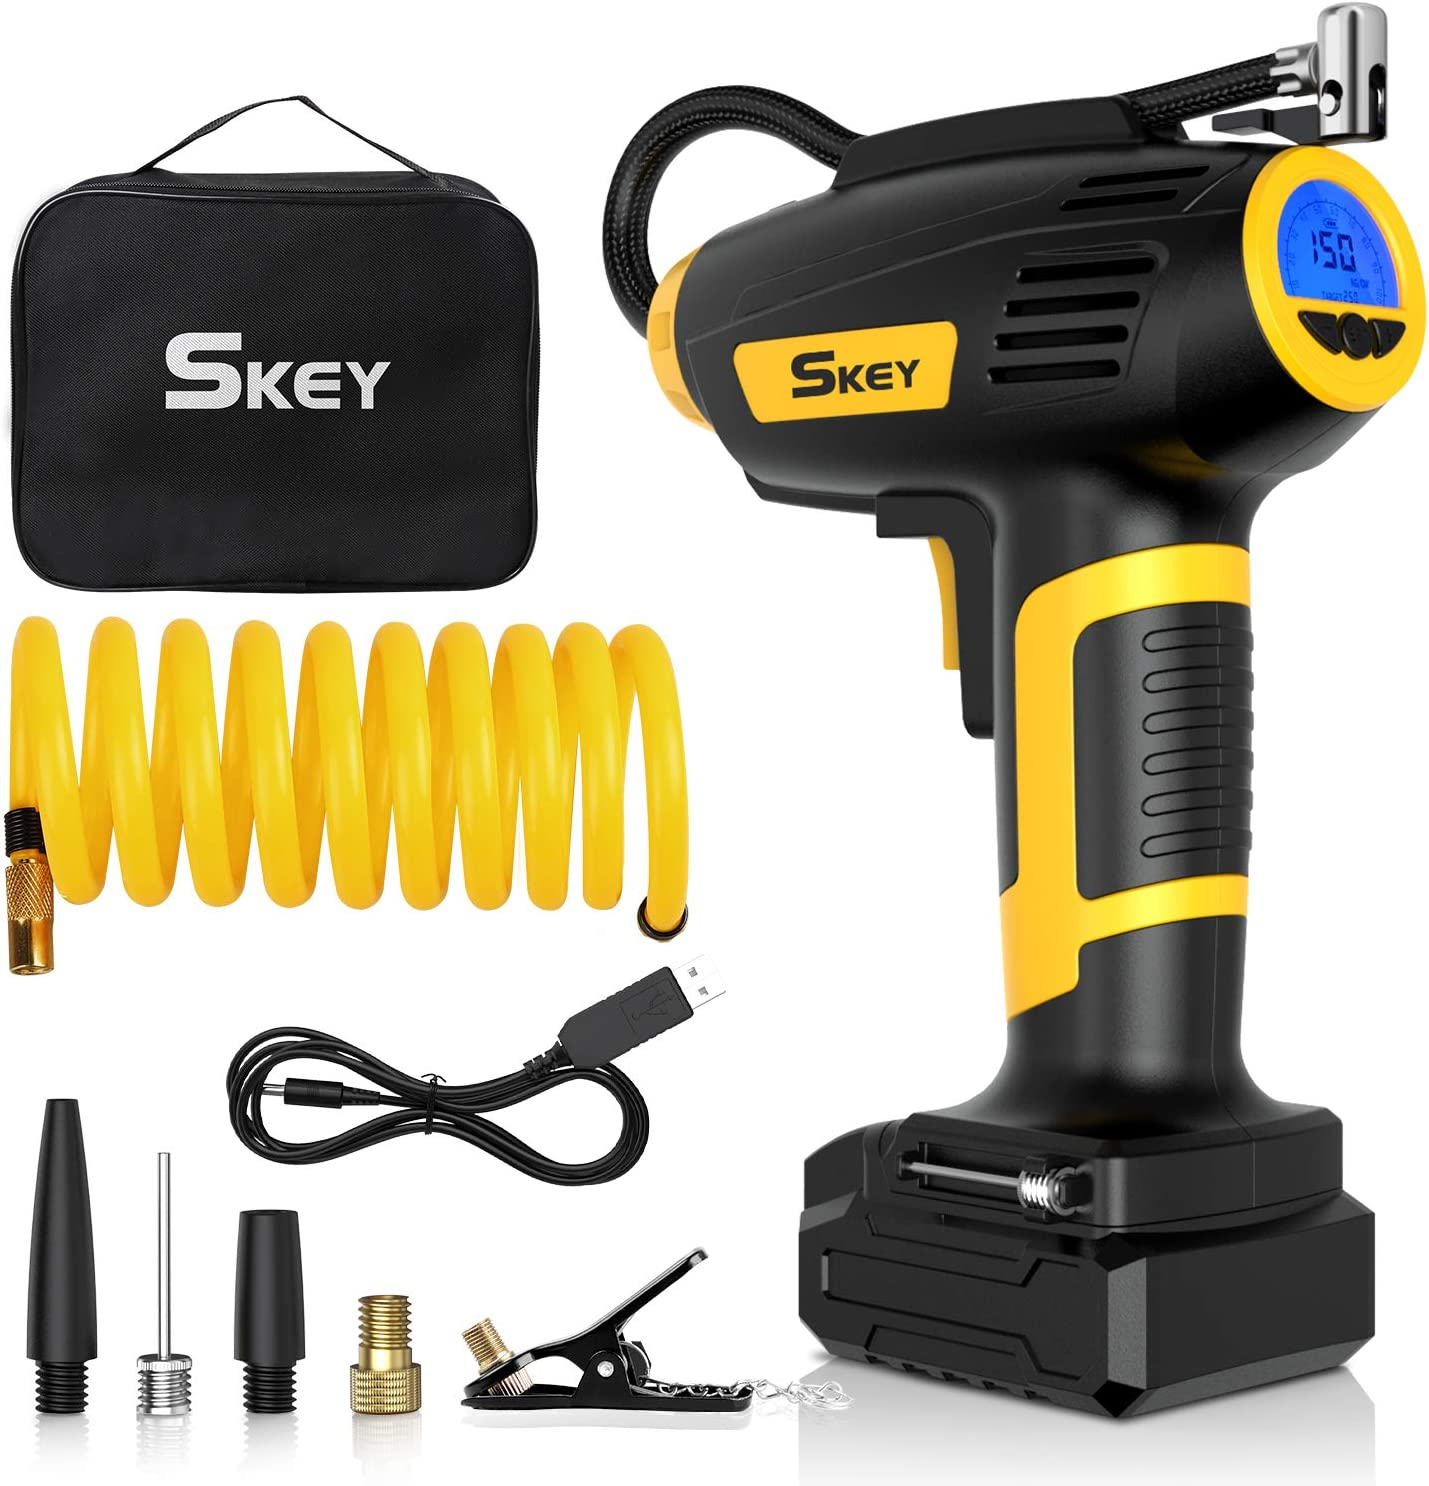 Skey Air Compressor Tire Inflator